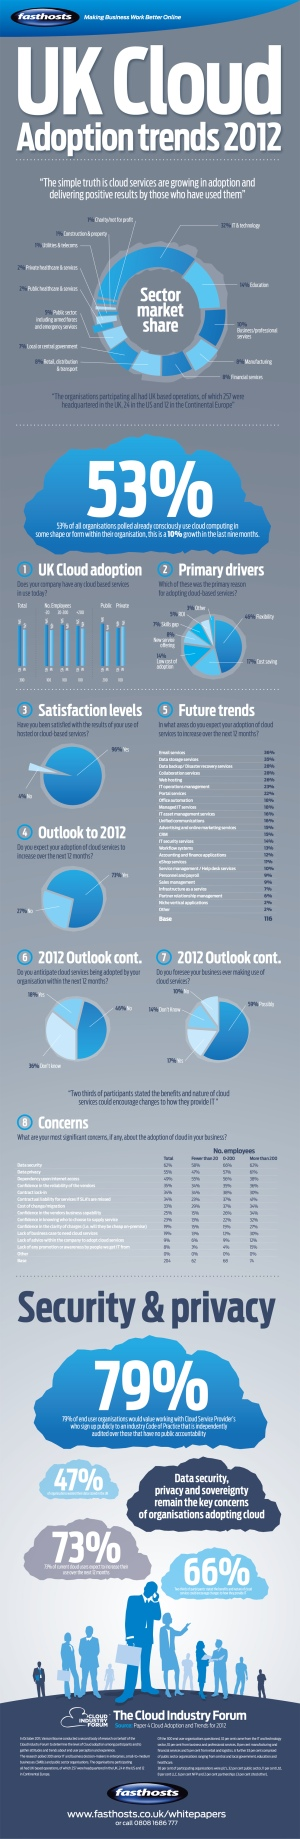 UK-Cloud-Adoption-Trends-2012-Large2